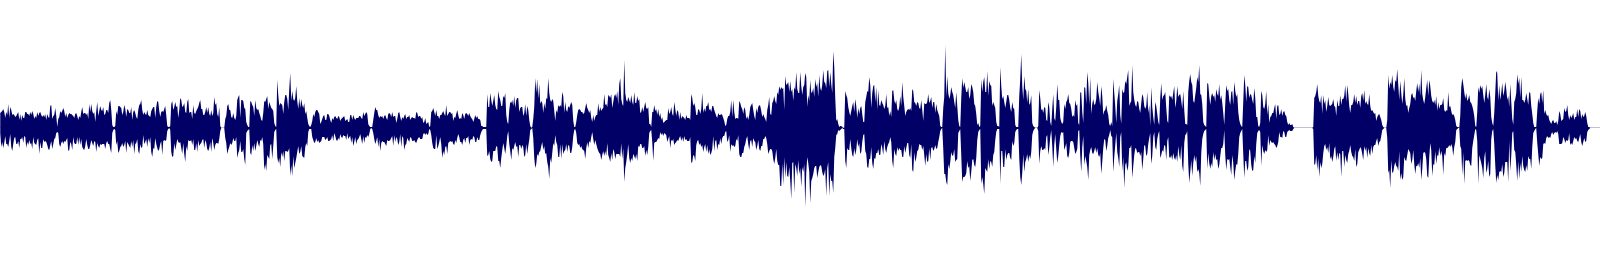 waveform of track #128951